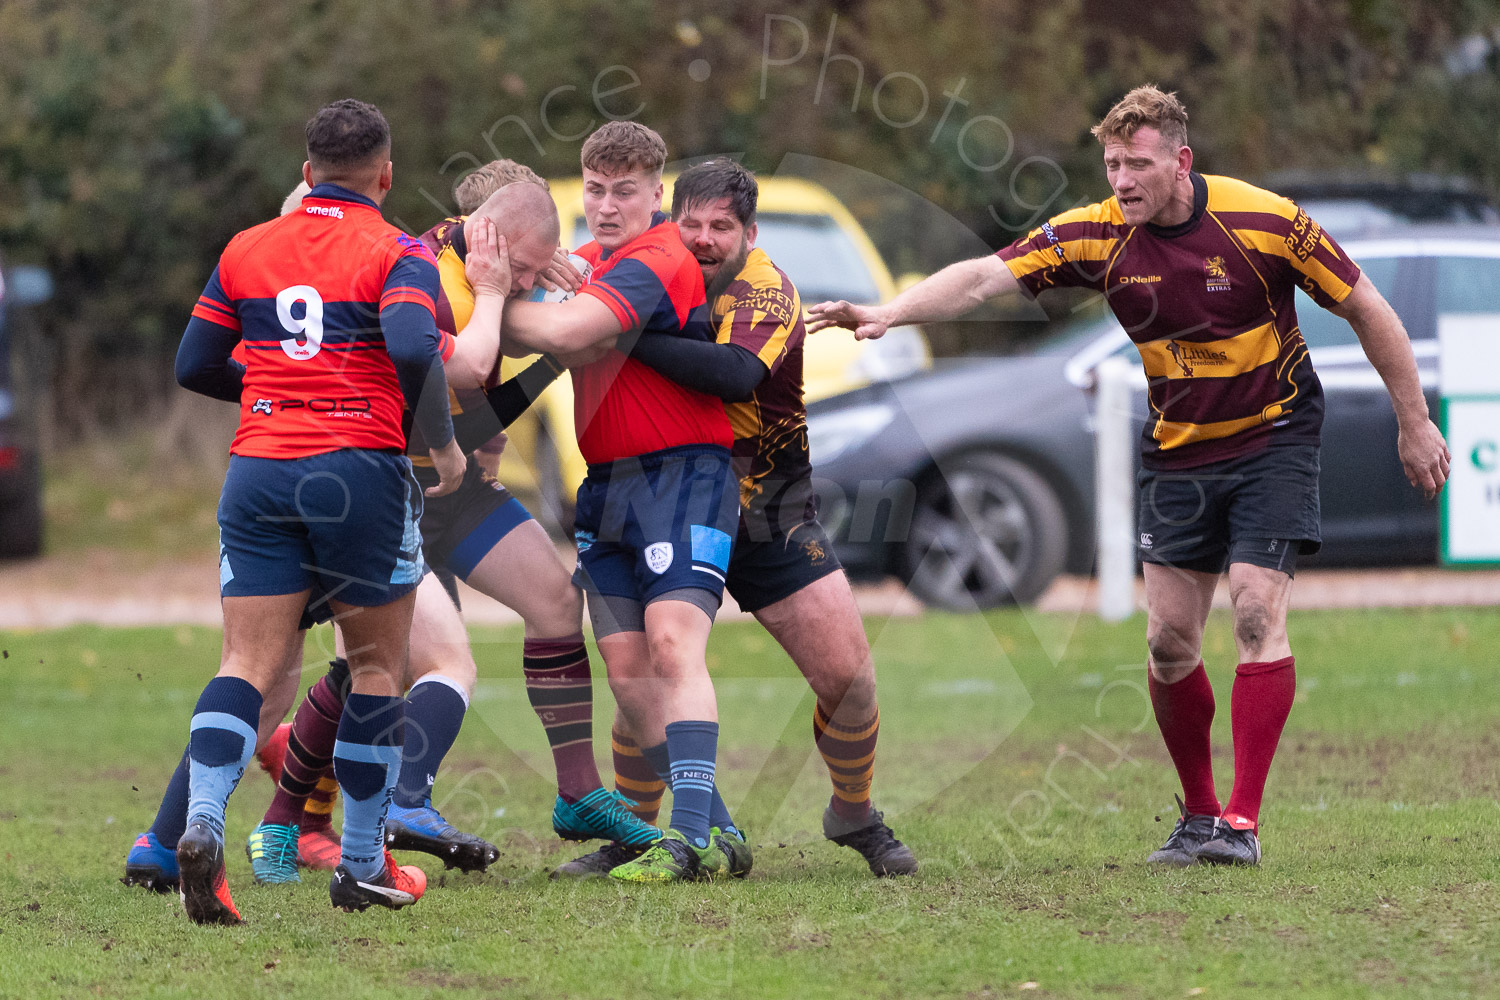 20181027 Amp Extras vs St Neots 2nd XV #2493